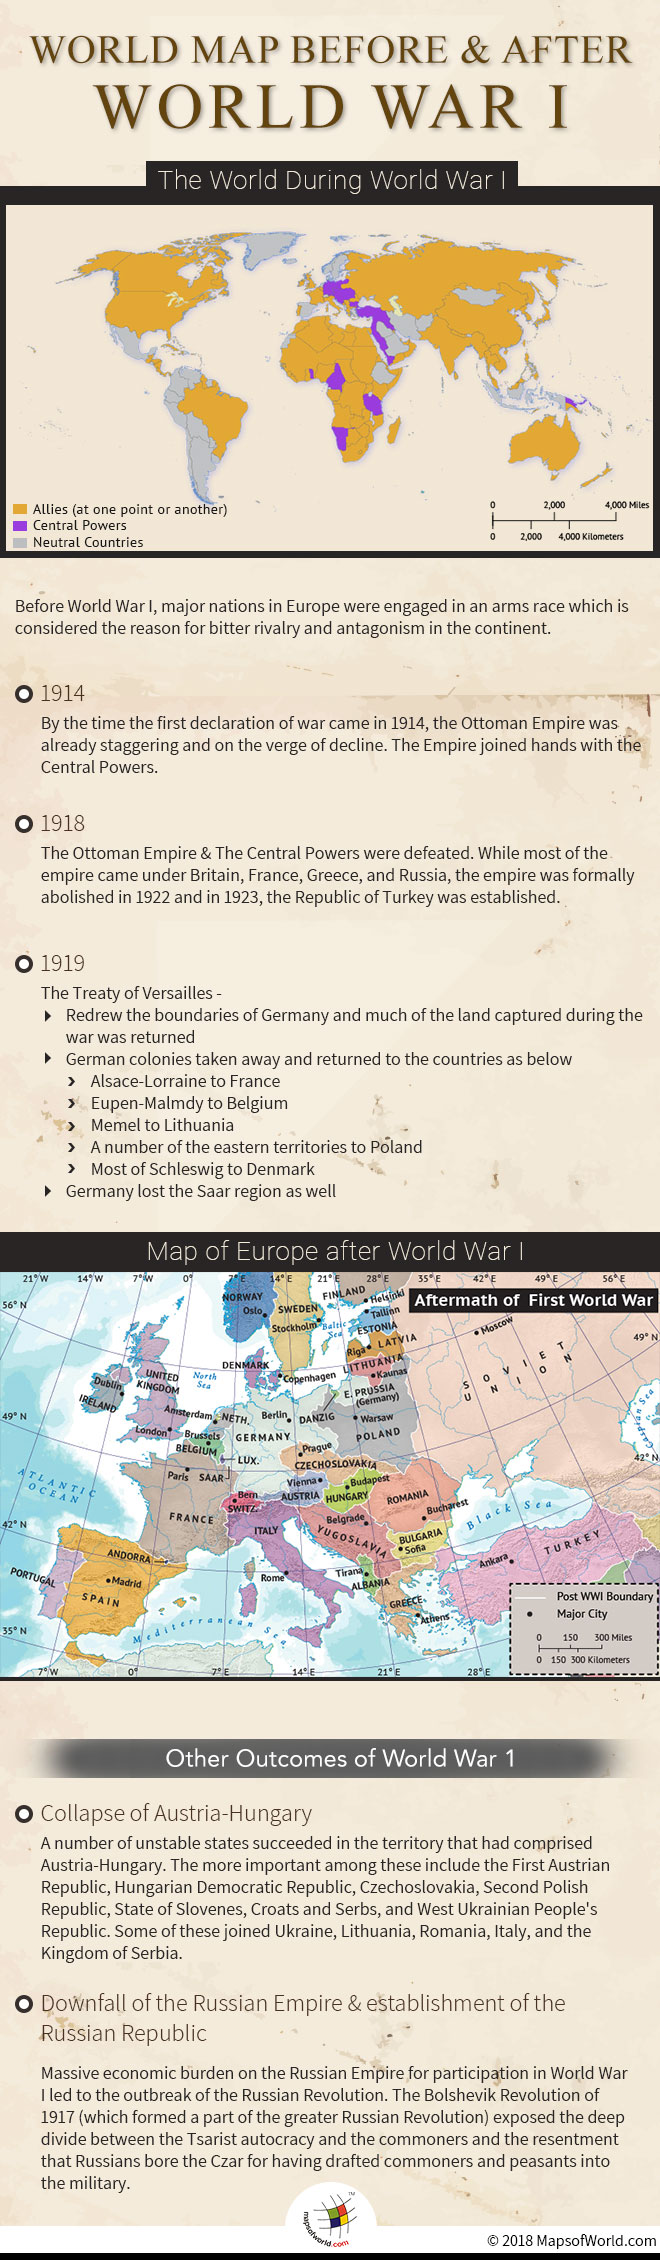 Infographic elaborating maps before and after World War 1